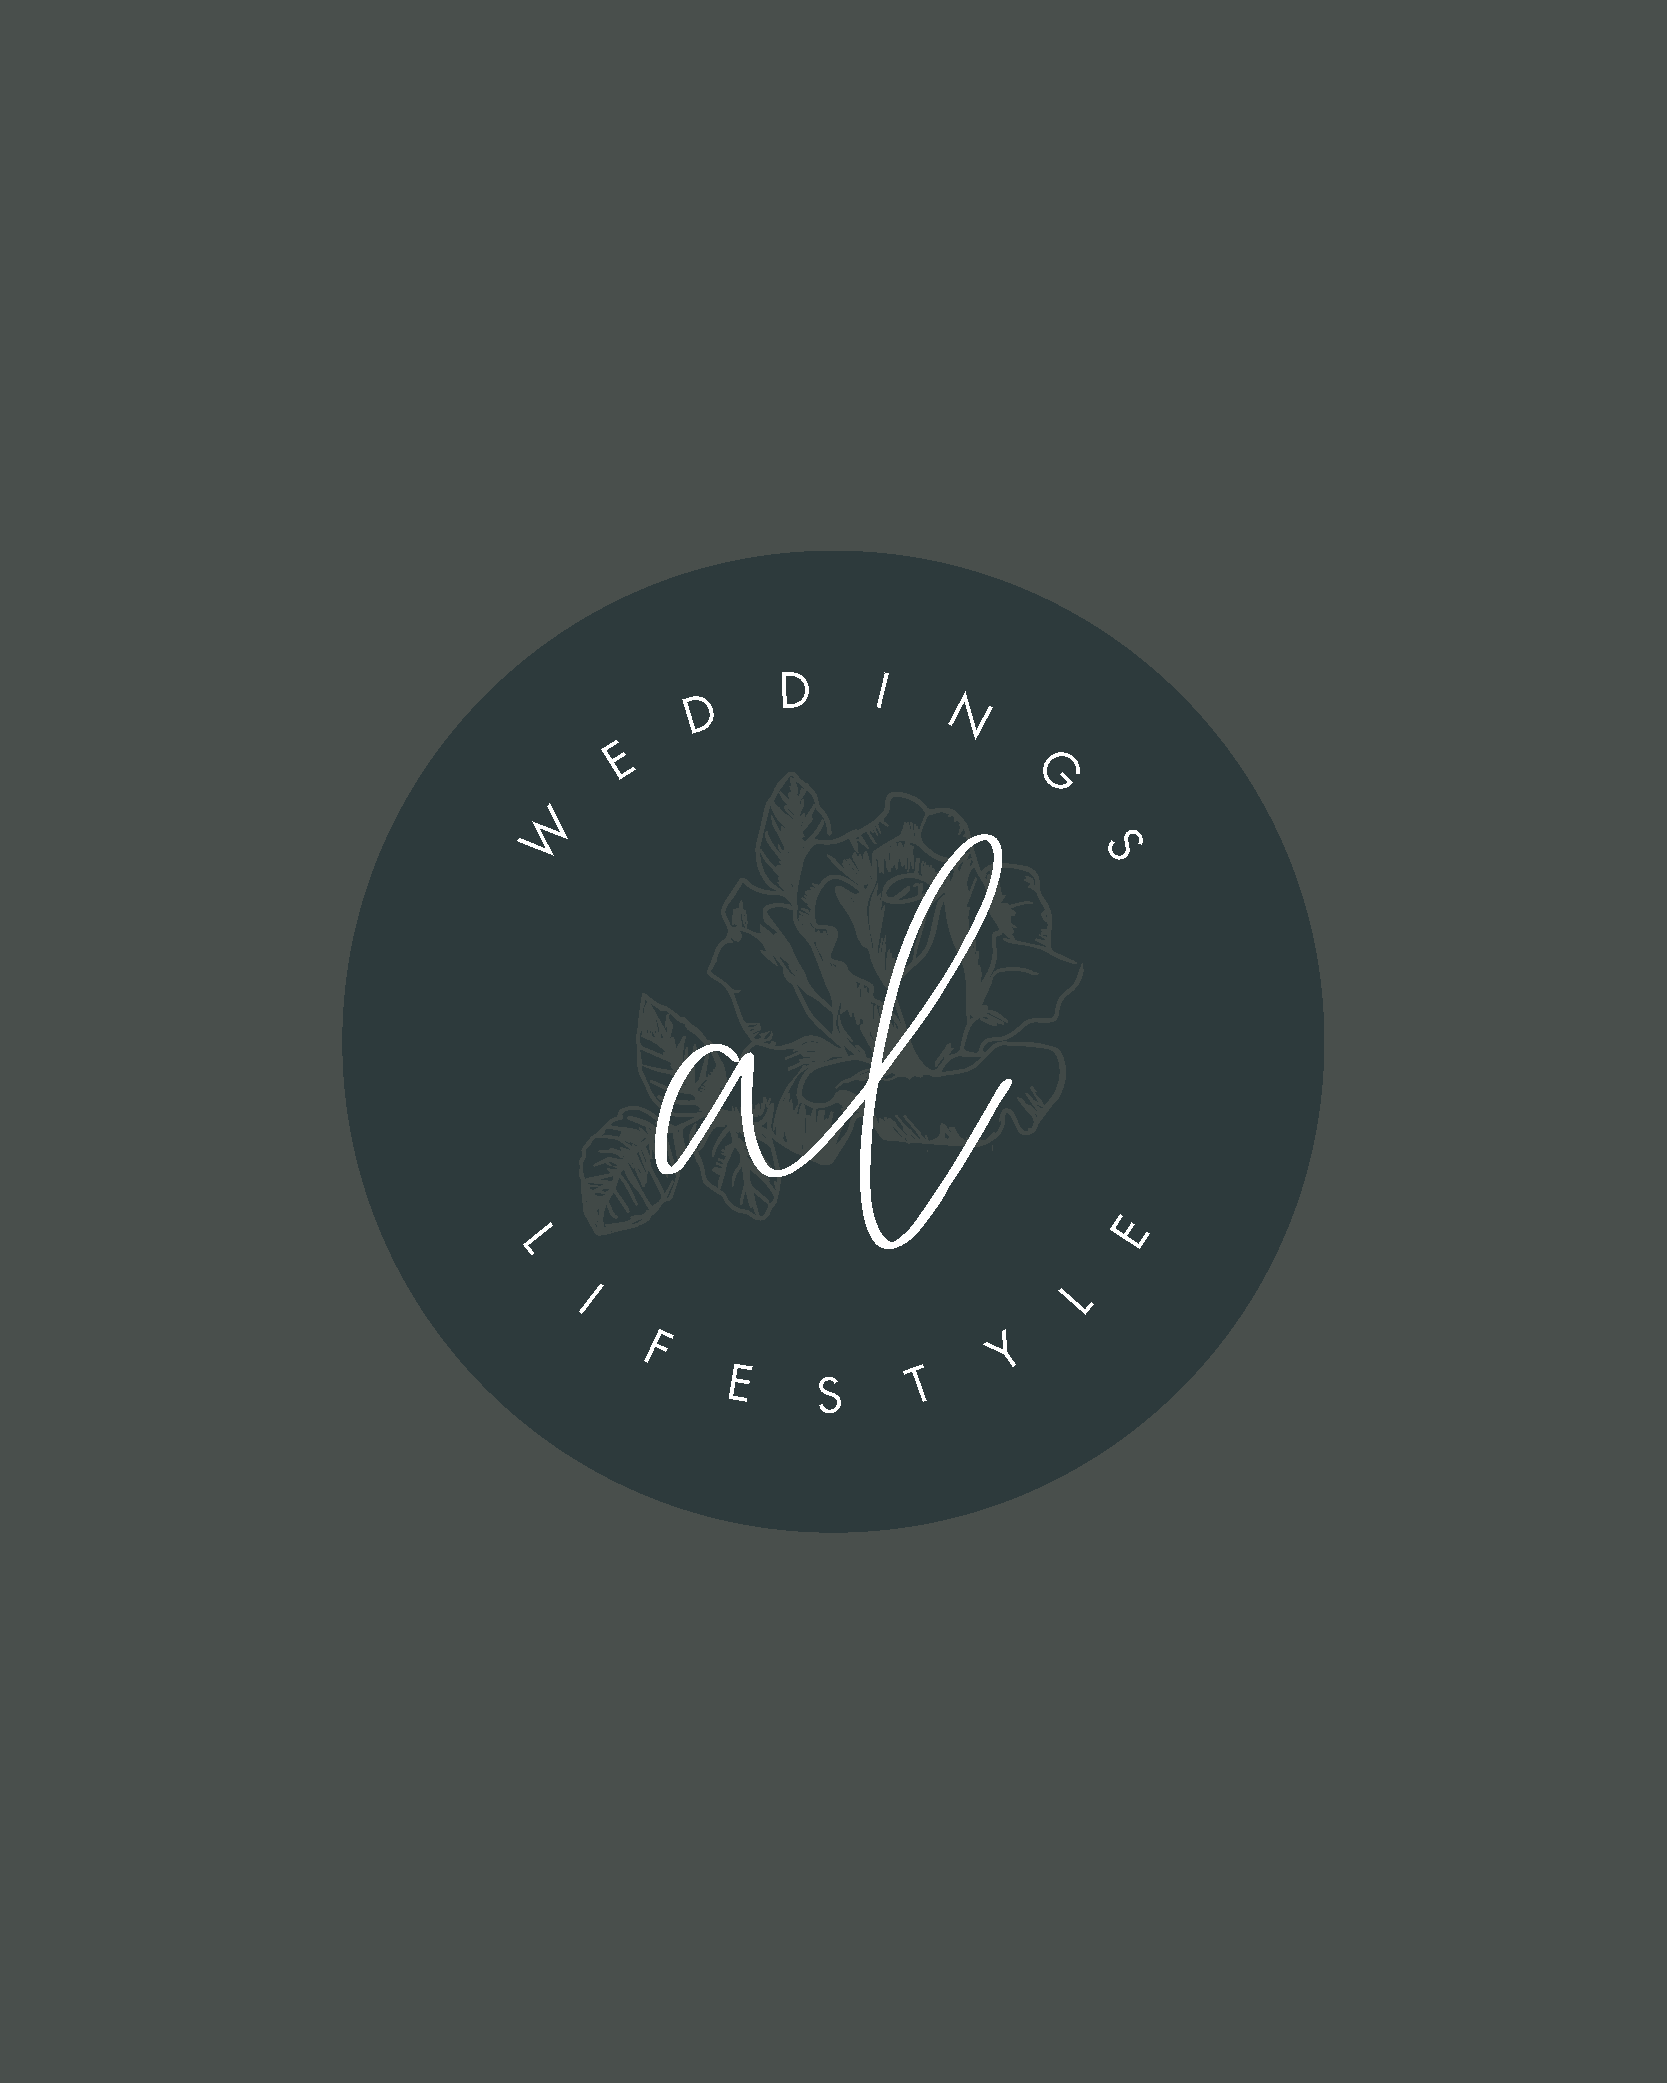 ali-leigh-photo-branding-logo-design-identity-handlettering-modern-circle-homepage-squarespace-workshop.png